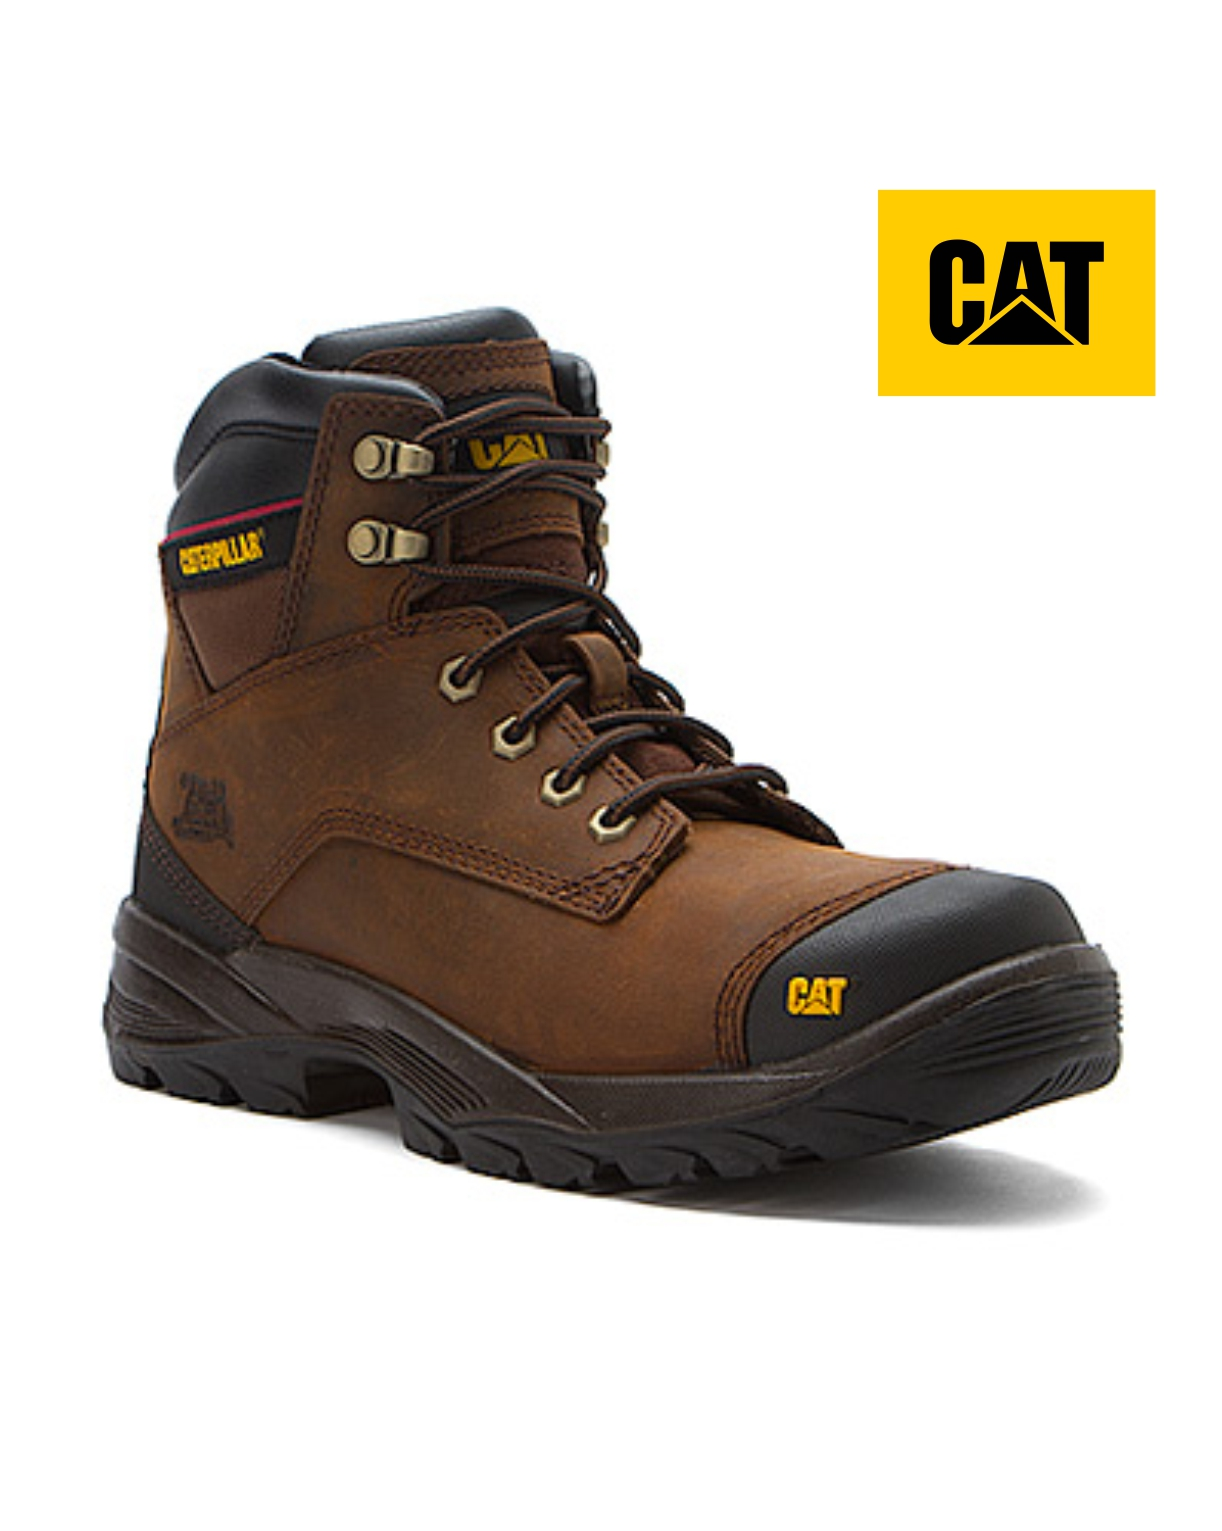 Cat Spiro 6 Work Boot Clearance Gerber S